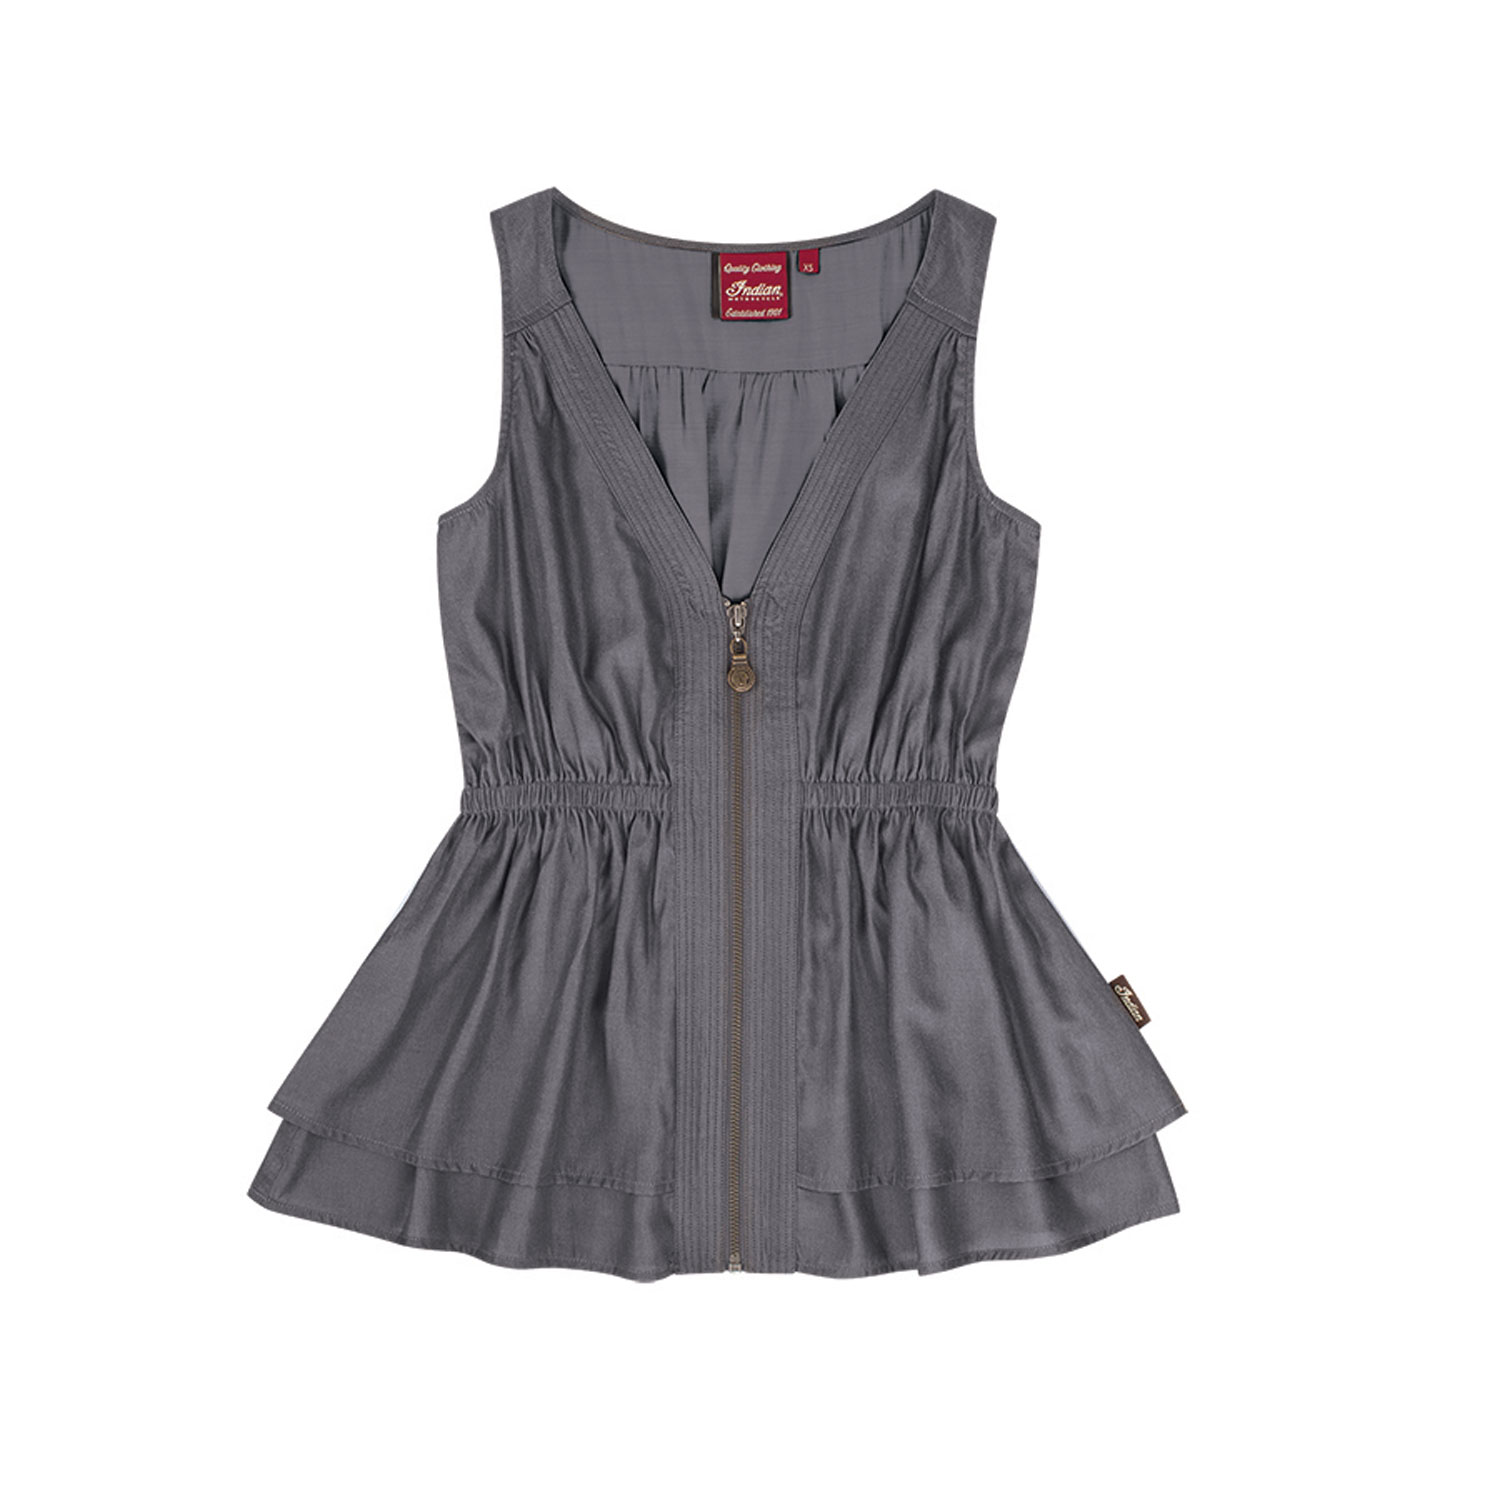 Women's Sleeveless Zip-Front Top with Peplum Hem, Gray